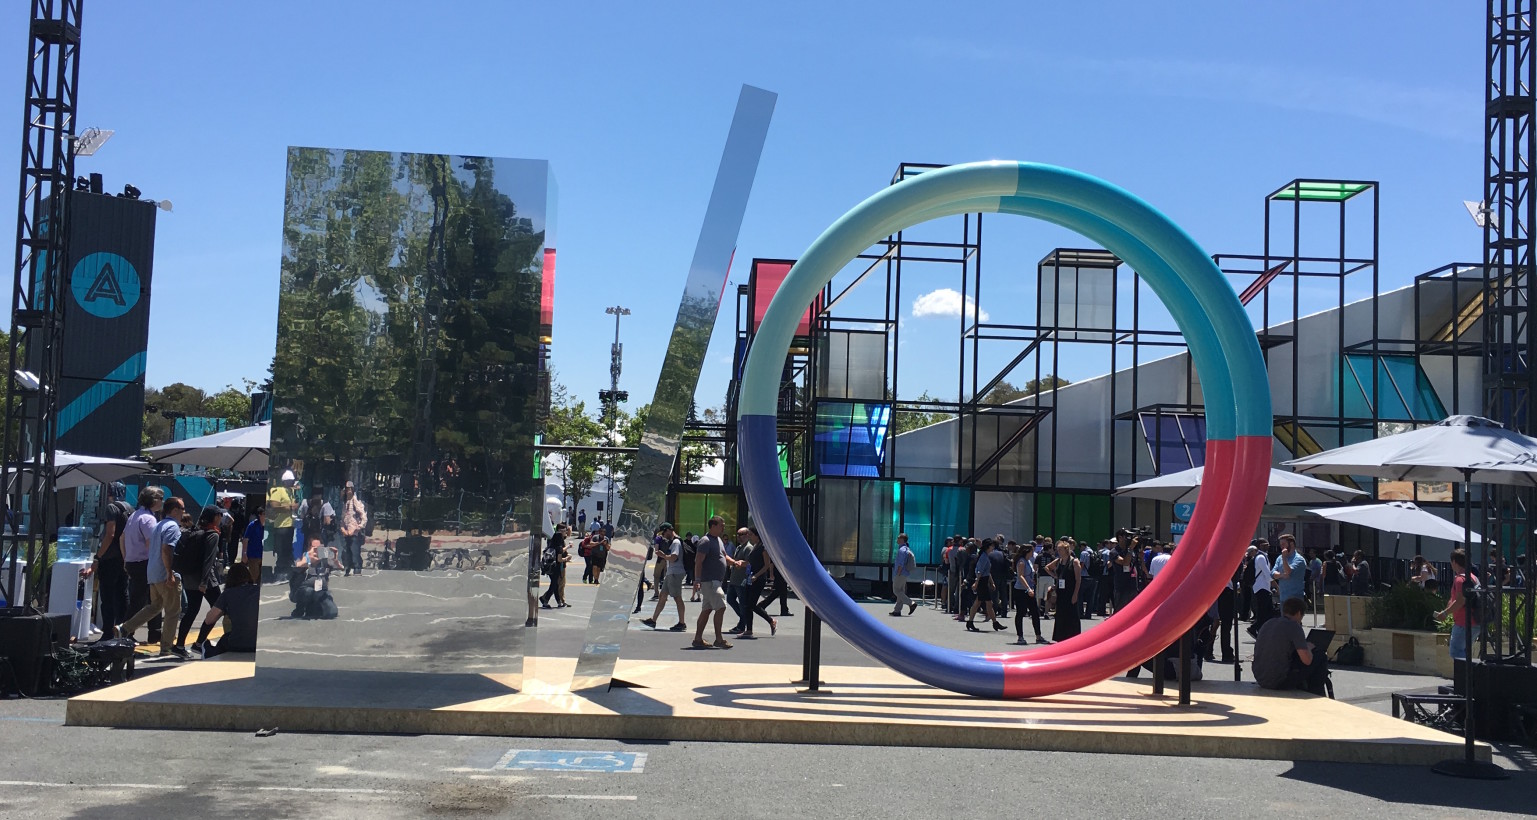 Turns out Google did give something away at I/O 2016, but it's not what anyone expected